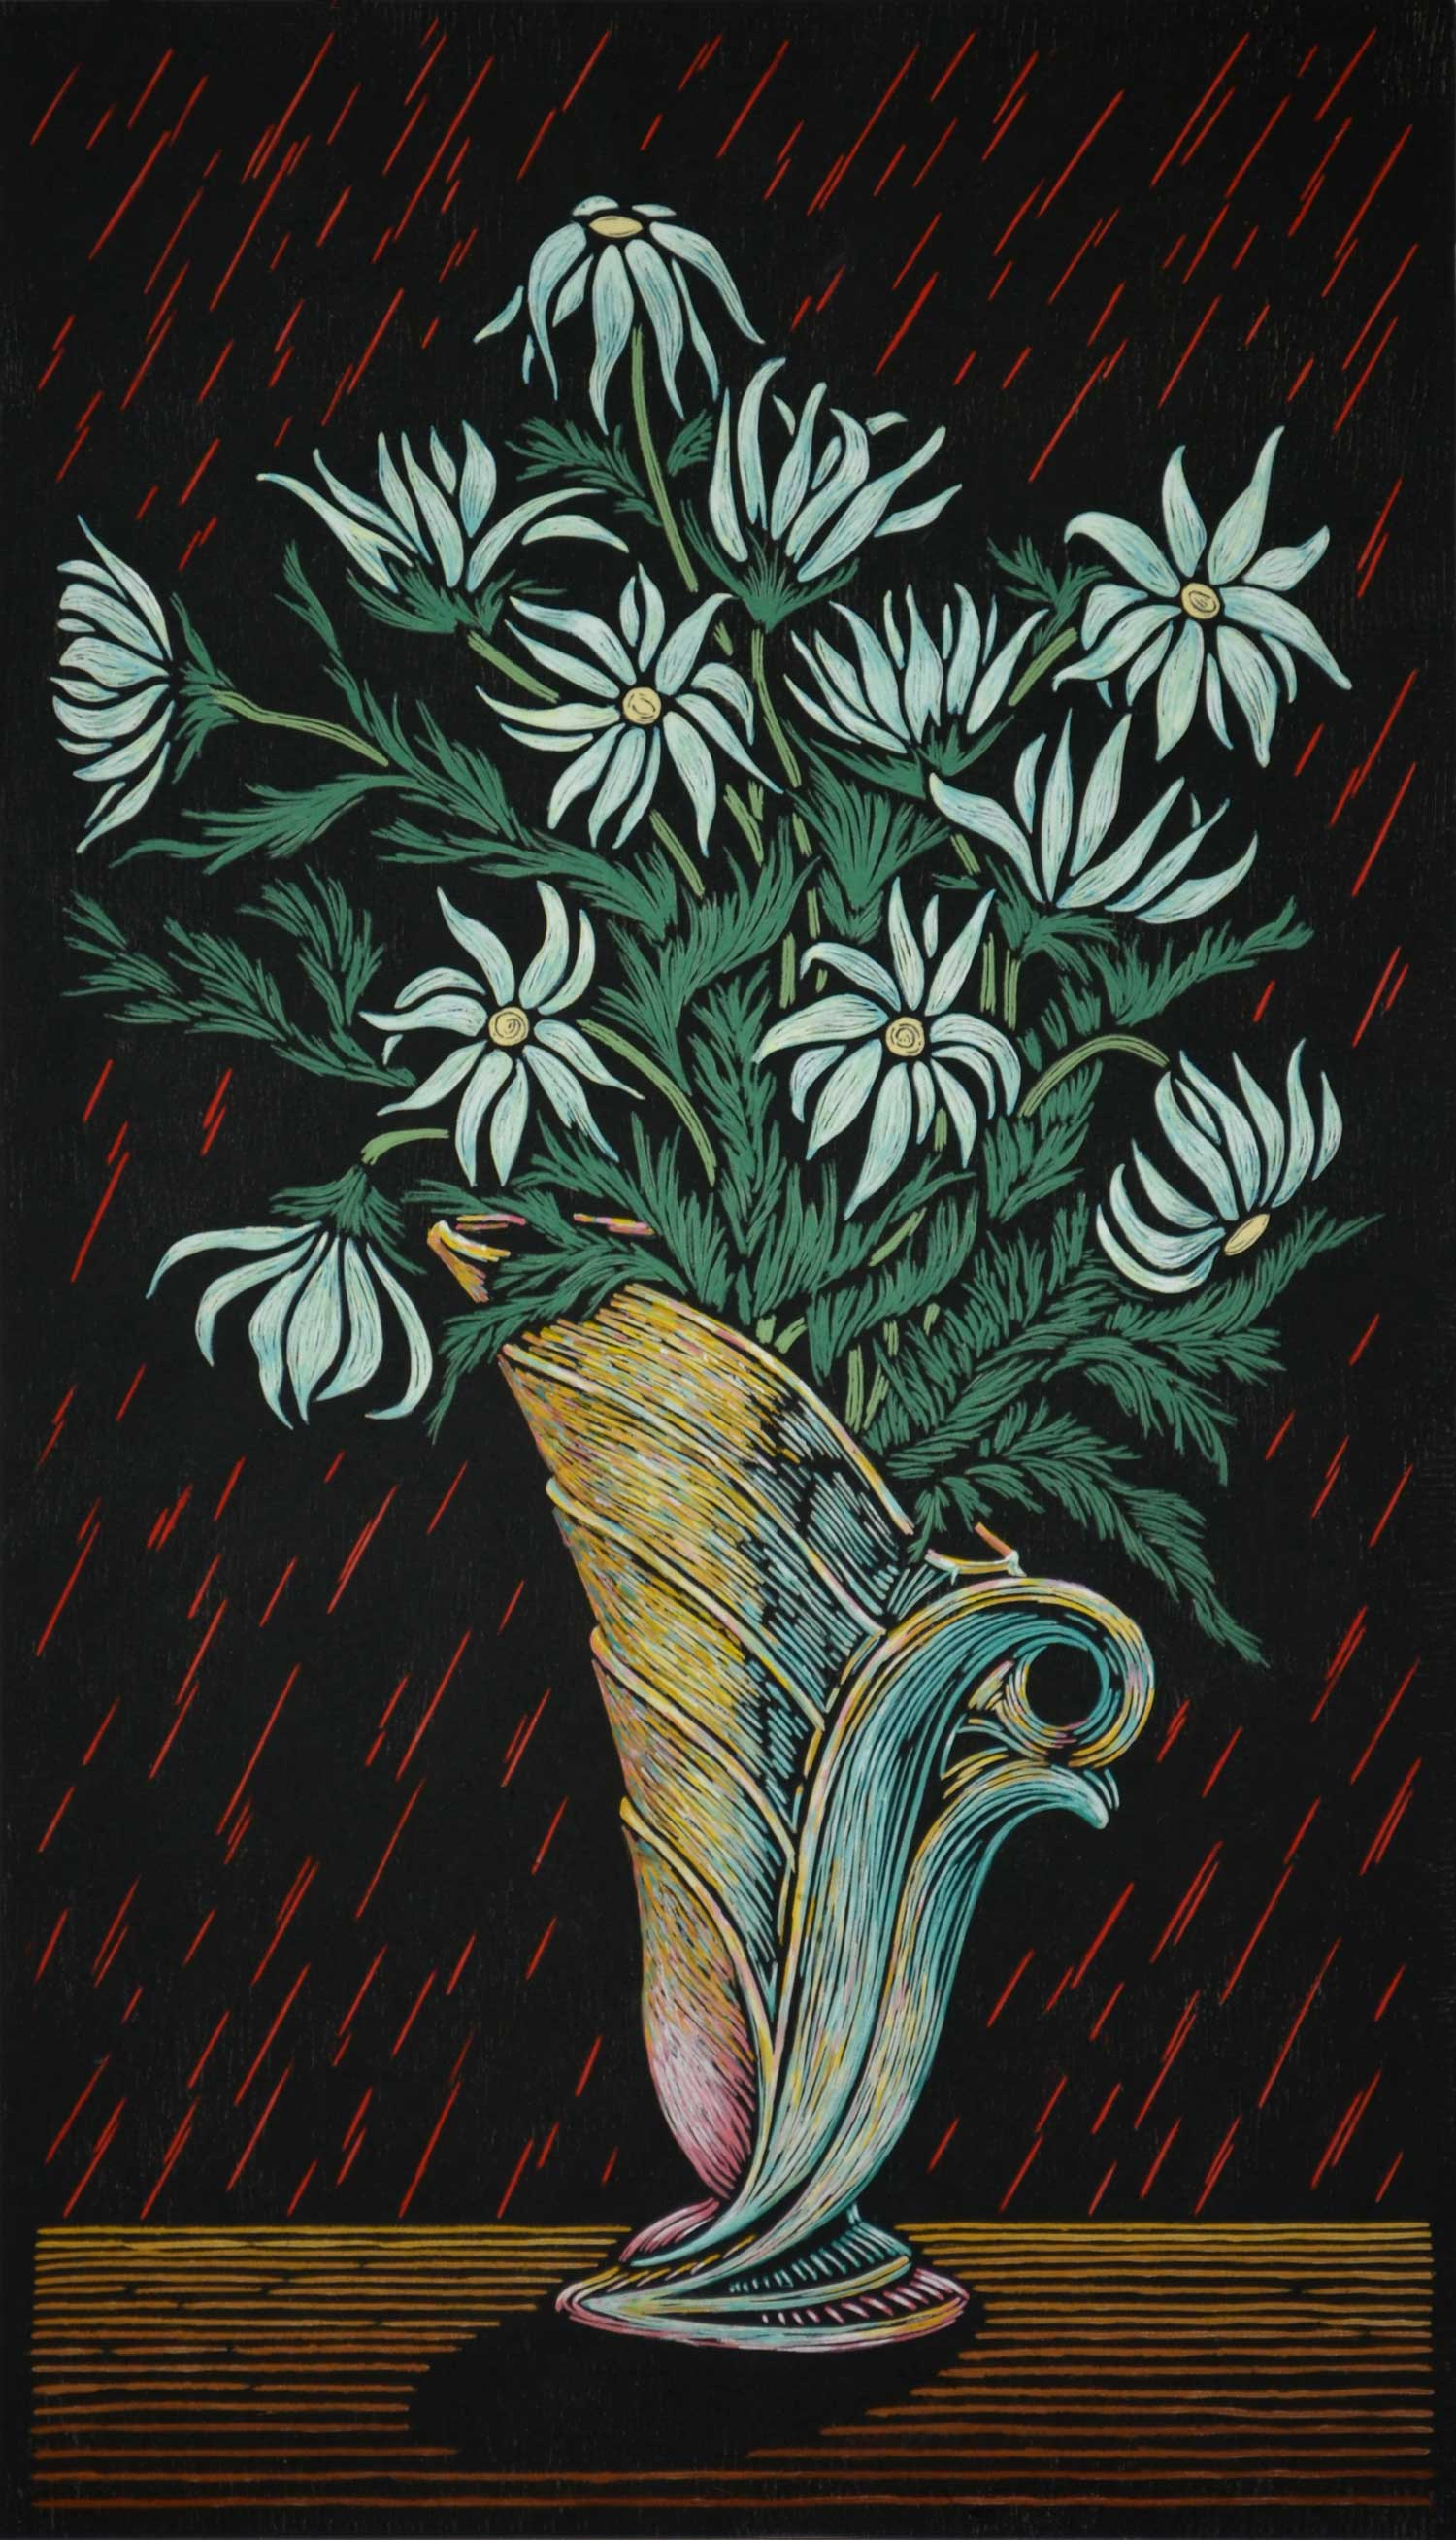 FLANNEL FLOWER IN VASE  75 X 43 CM EDITION OF 50  HAND COLOURED LINOCUT ON HANDMADE JAPANESE PAPER  $1,700